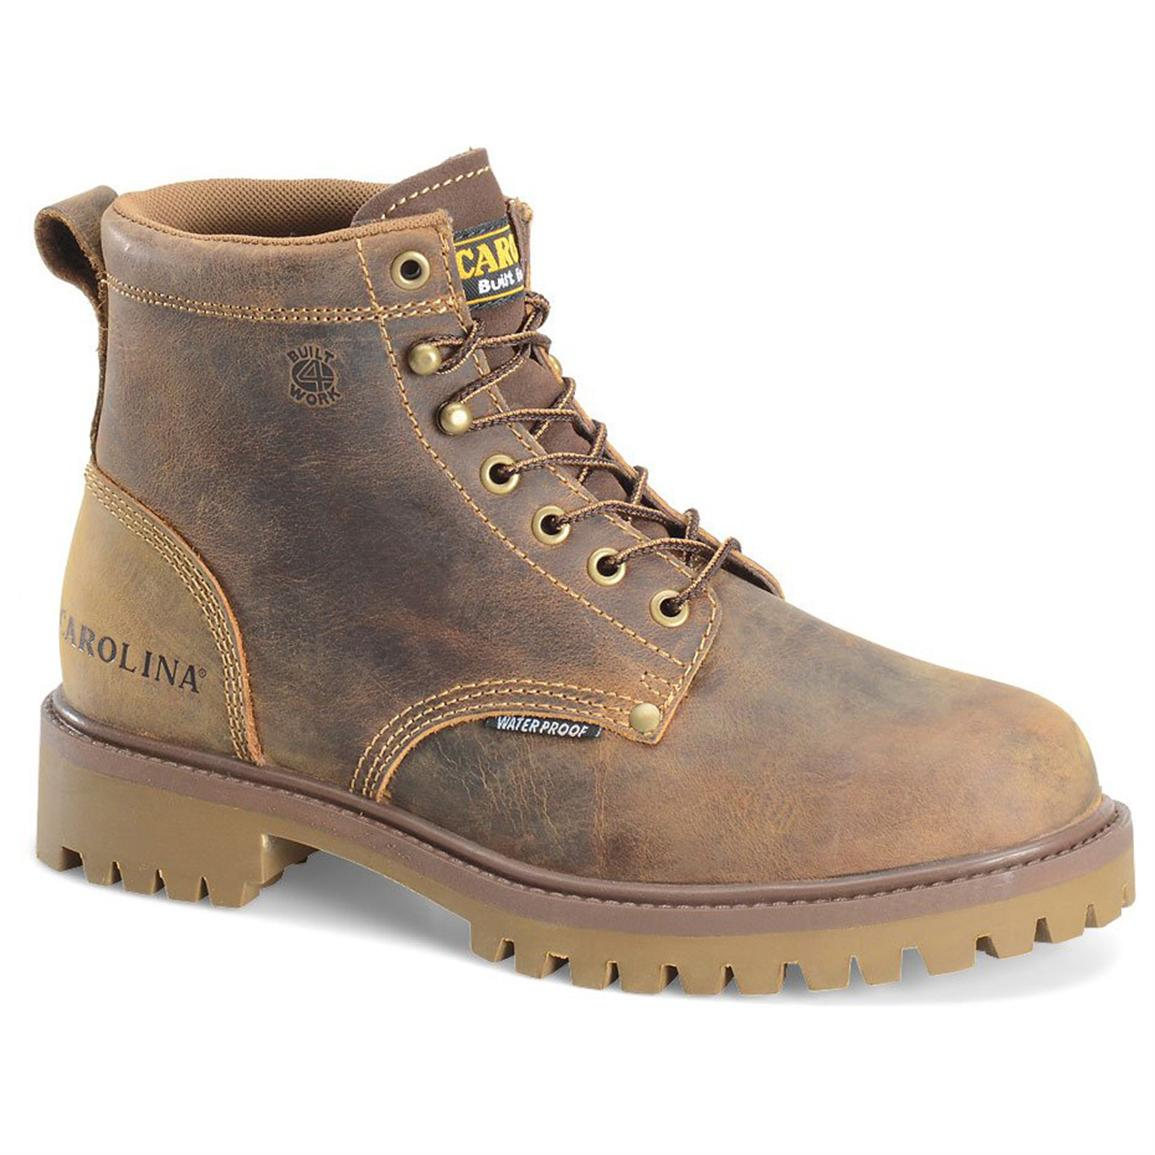 Men's Carolina Waterproof Work Boots, Old Town Folklore